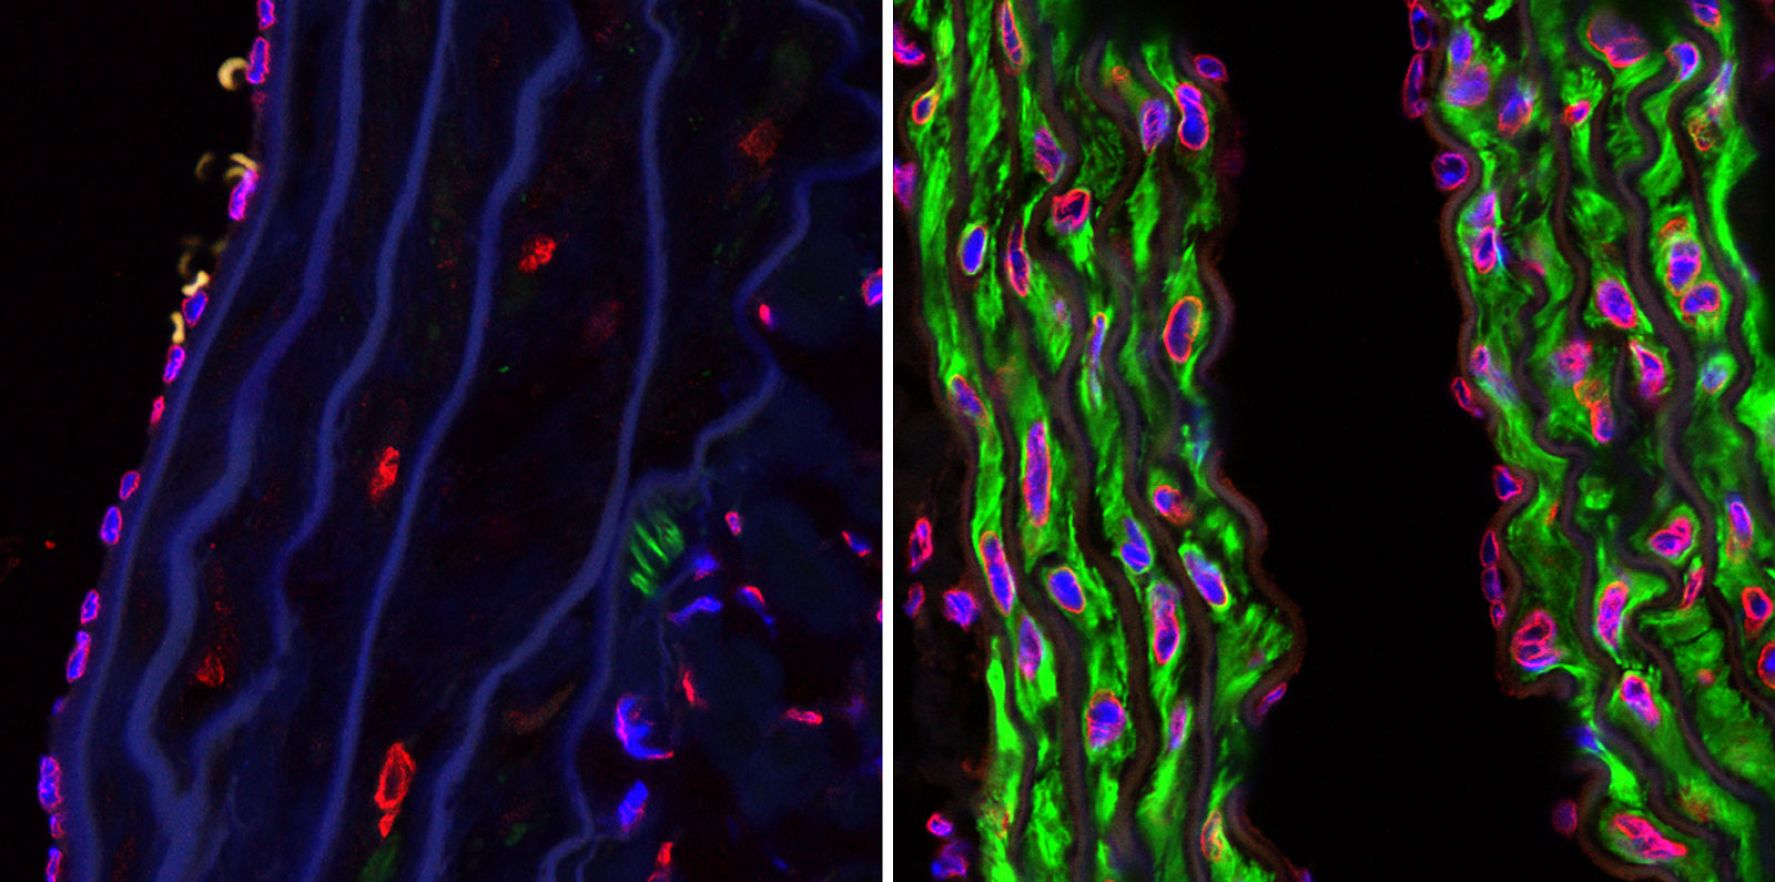 English: Confocal microscopy photographs of the descending aortas of two 15-month-old progeria mice, one untreated (left picture) and the other treated with the farnsyltransferase inhibitor drug tipifarnib (right picture). The microphotographs show prevention of the vascular smooth muscle cell loss that is otherwise rampant by this age. Staining was smooth muscle alpha-actin (green), lamins A/C (red) and DAPI (blue). (Original magnification, x 40)